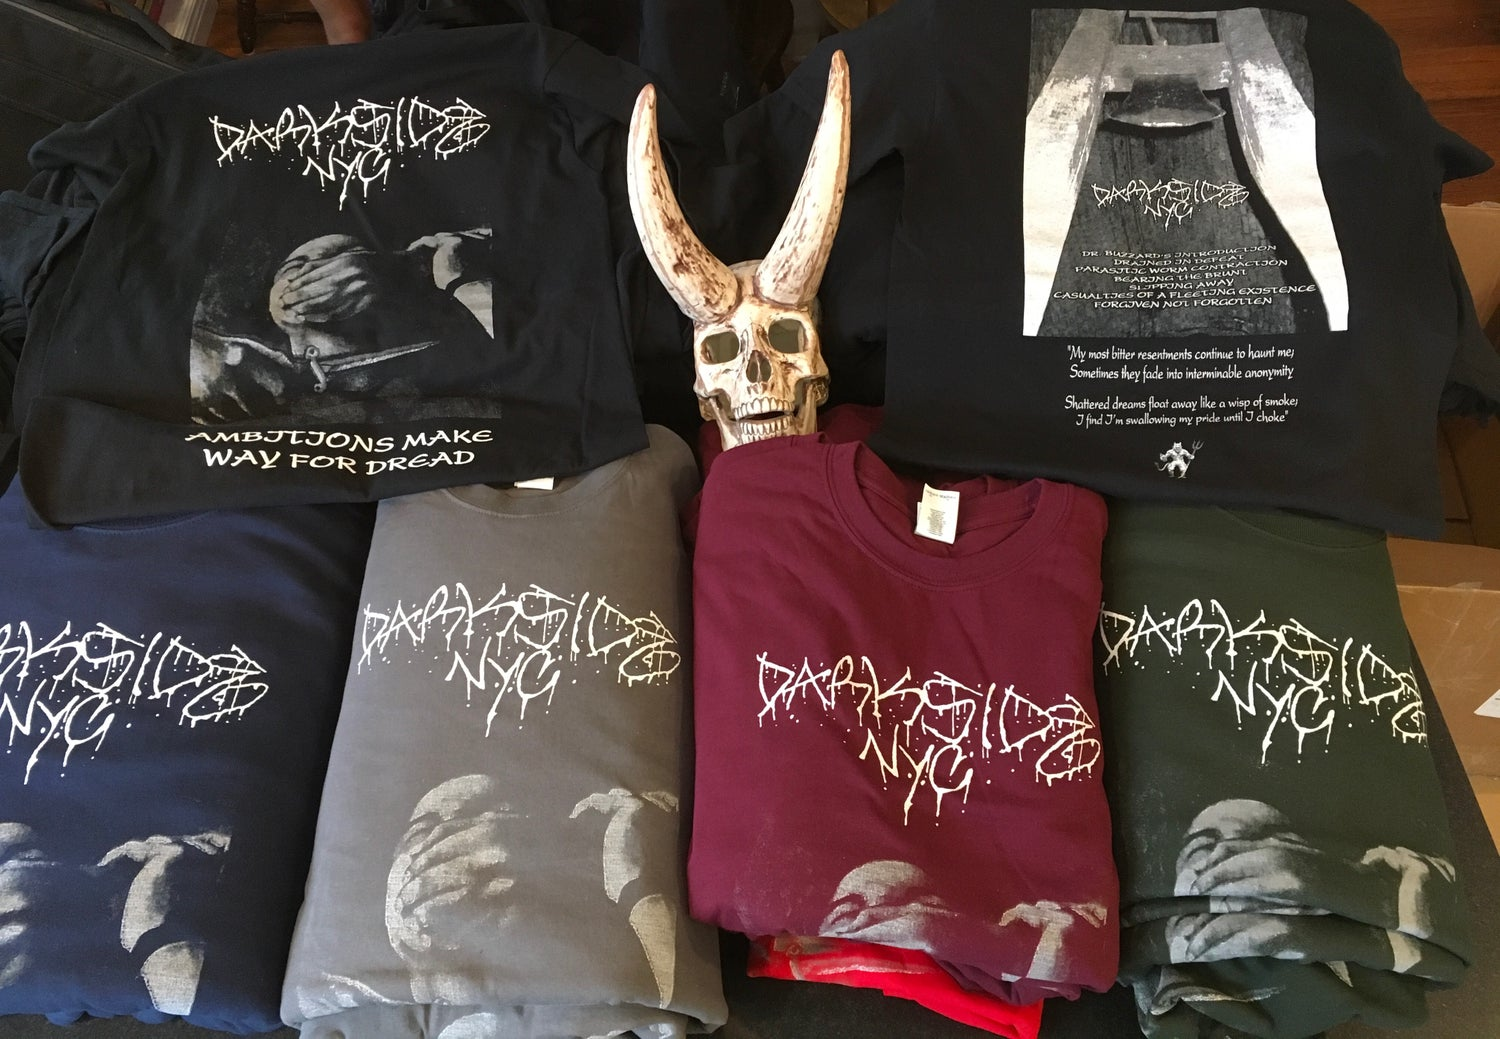 Image of Darkside NYC T-shirt — Ambitions Make Way For Dread